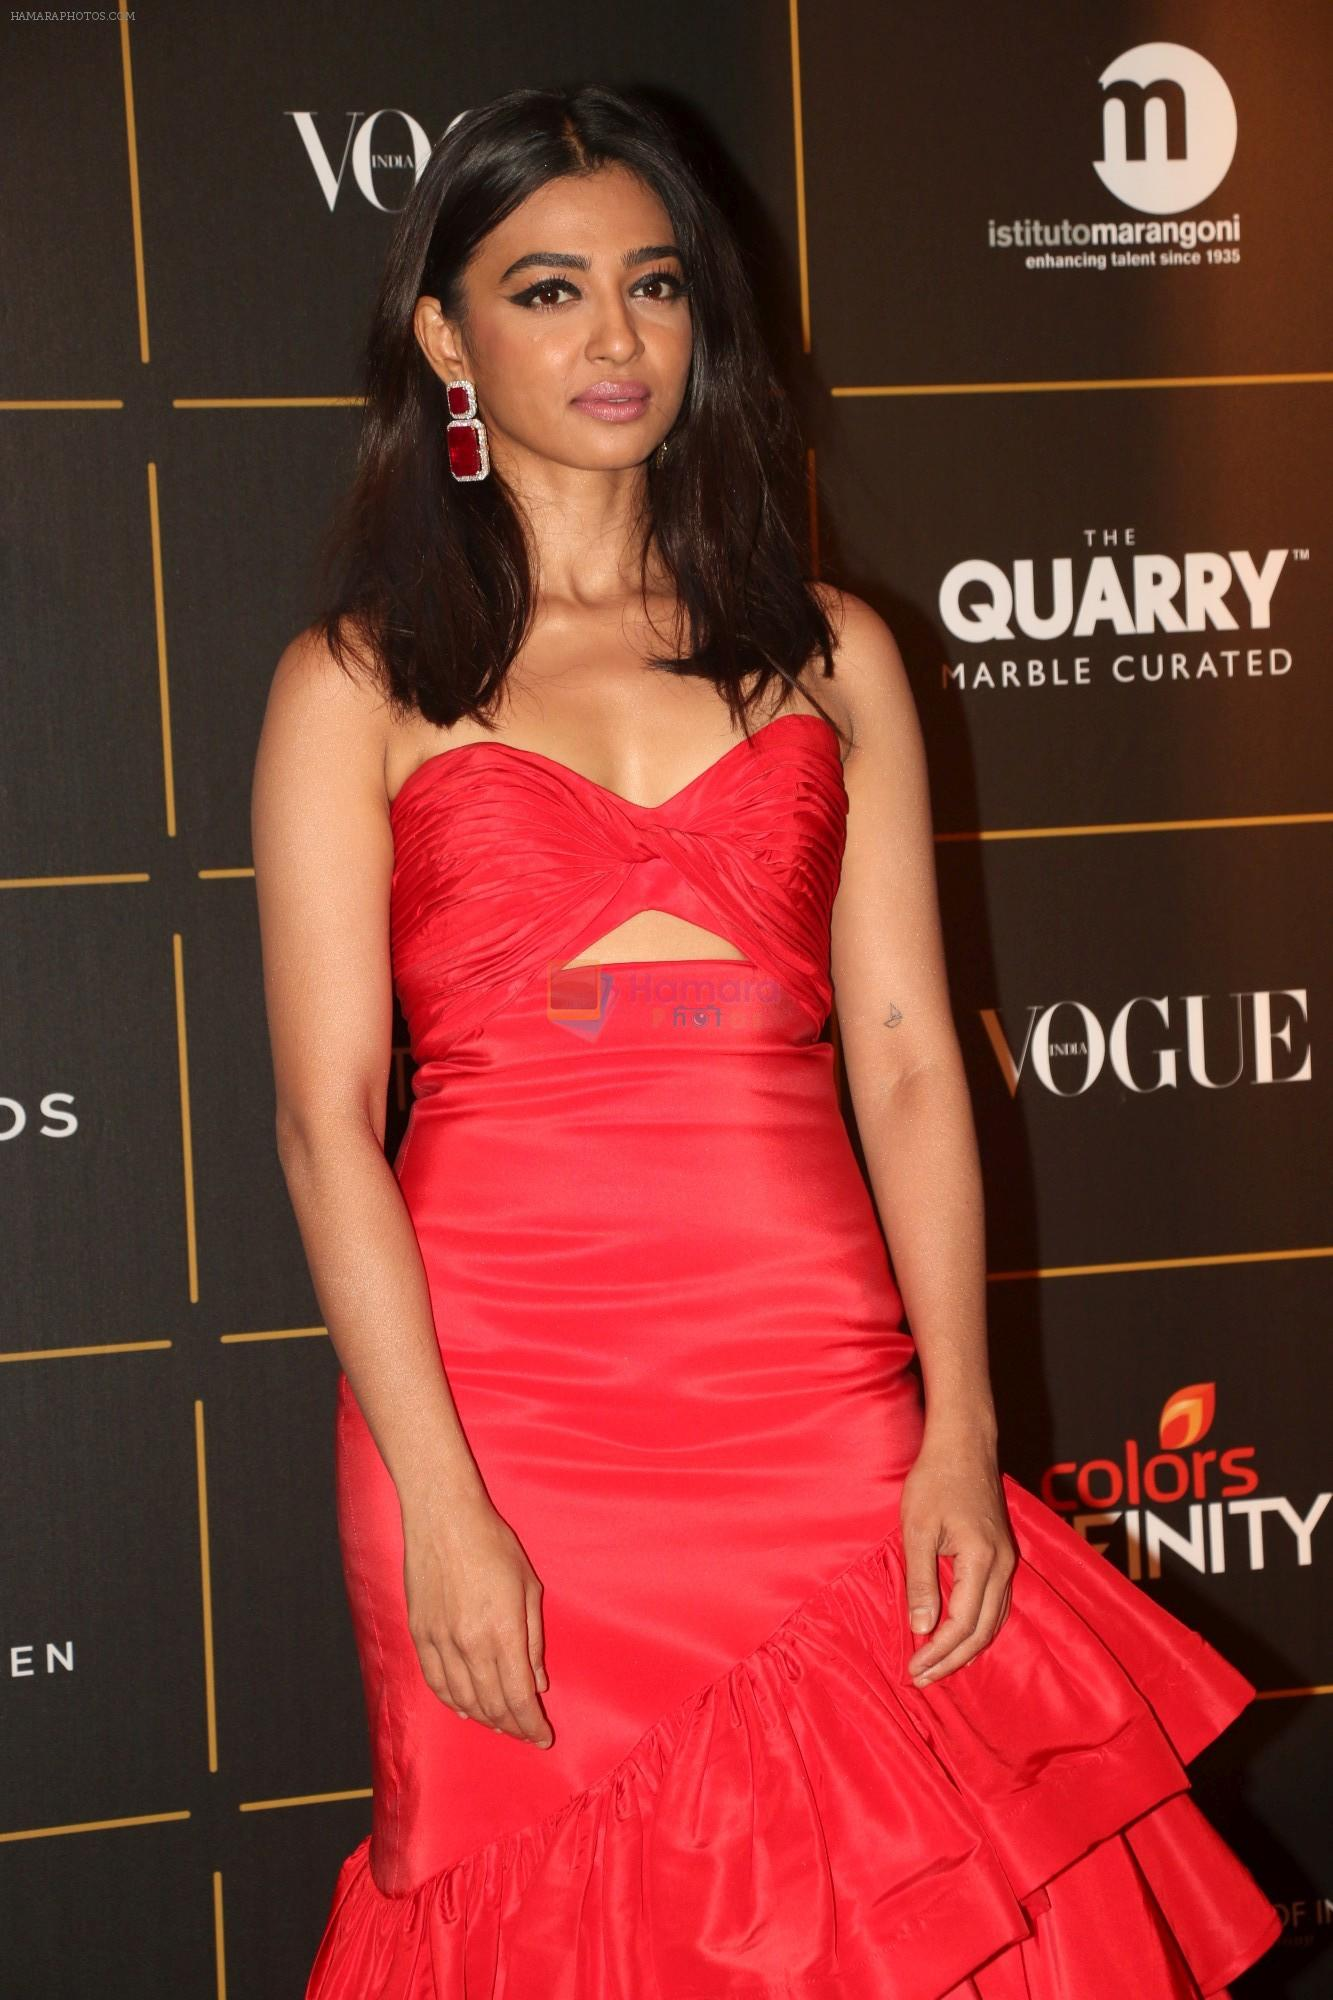 Radhika Apte at The Vogue Women Of The Year Awards 2018 on 27th Oct 2018